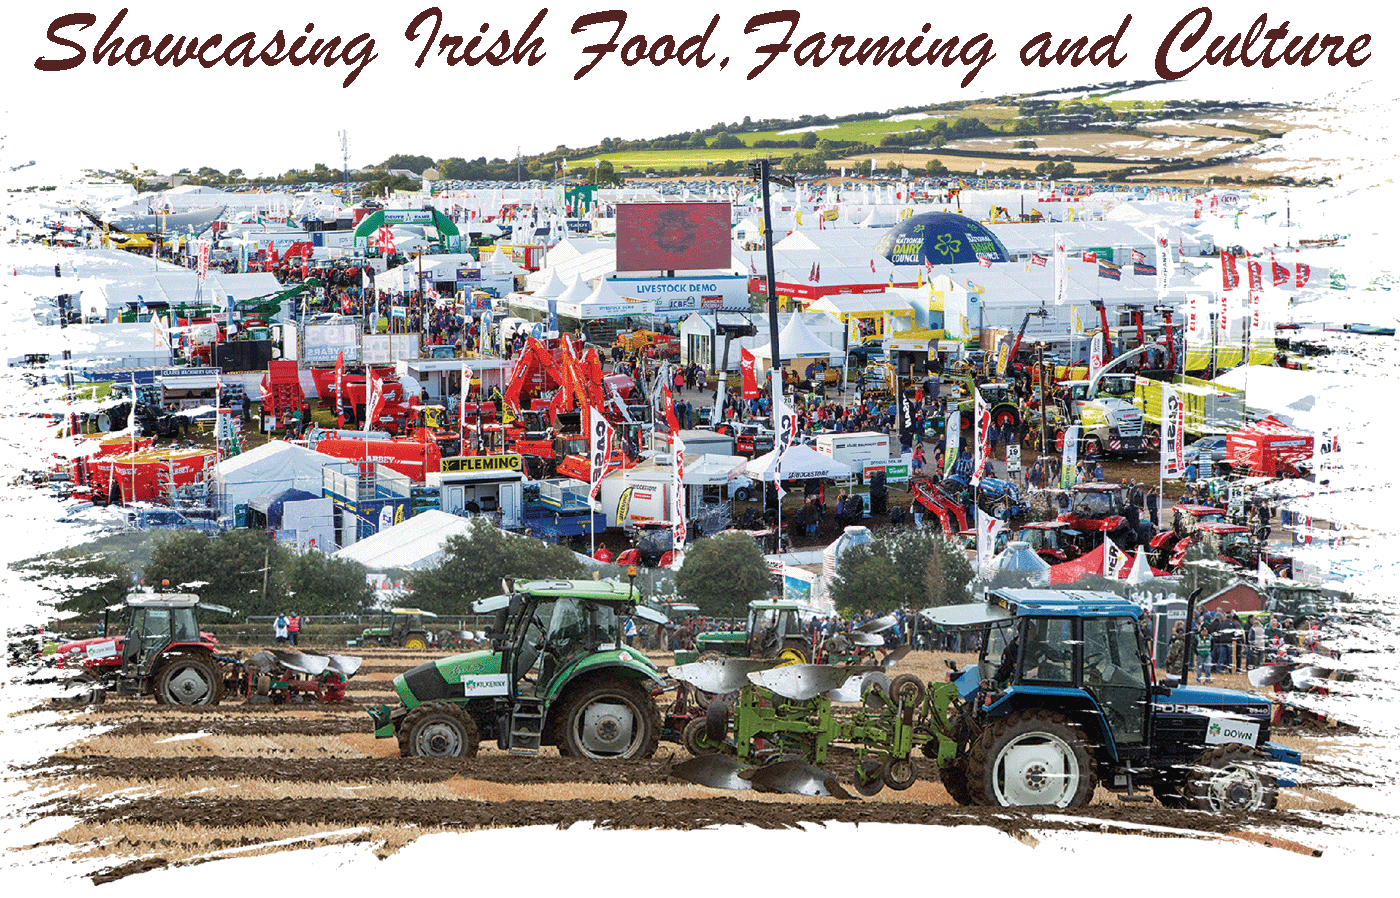 National Ploughing Championship, Tullamore, Co. Offaly